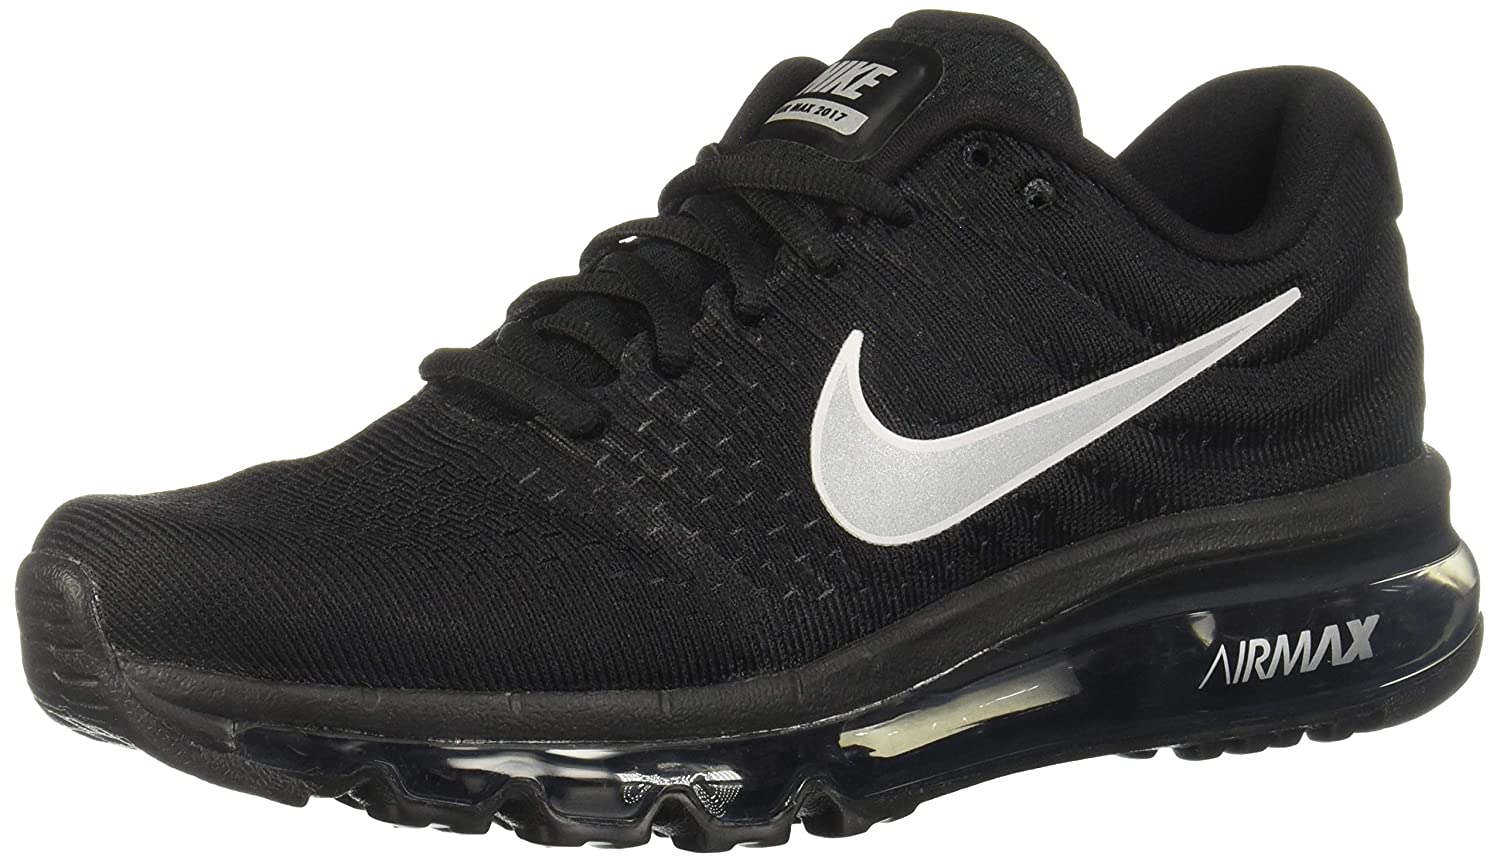 97f3bf7412 Amazon.com | Nike Womens Air Max 2017 Running Shoes Black/White/Anthracite  849560-001 Size 10 | Road Running